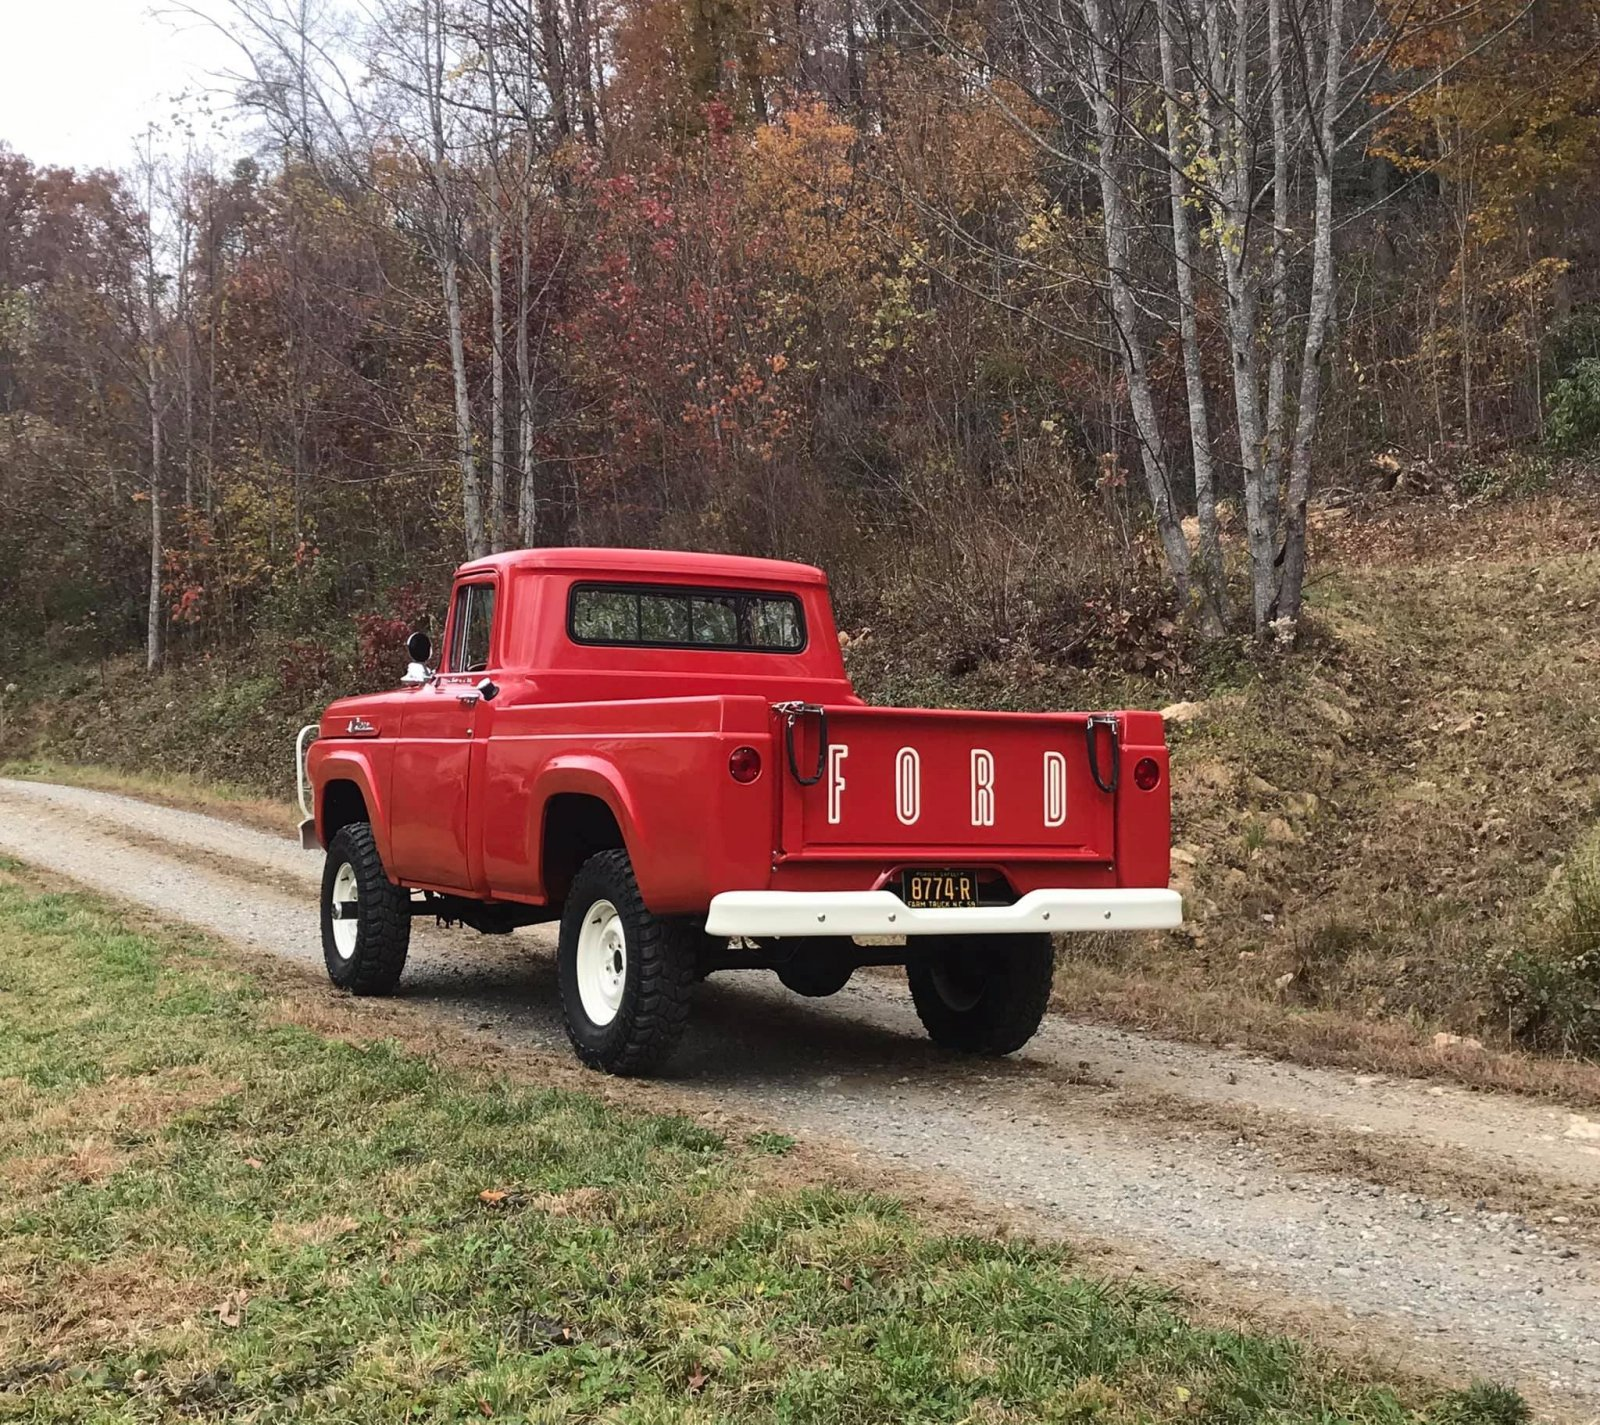 1959 Ford F100 4x4 Built From The Ground Up 15.jpg